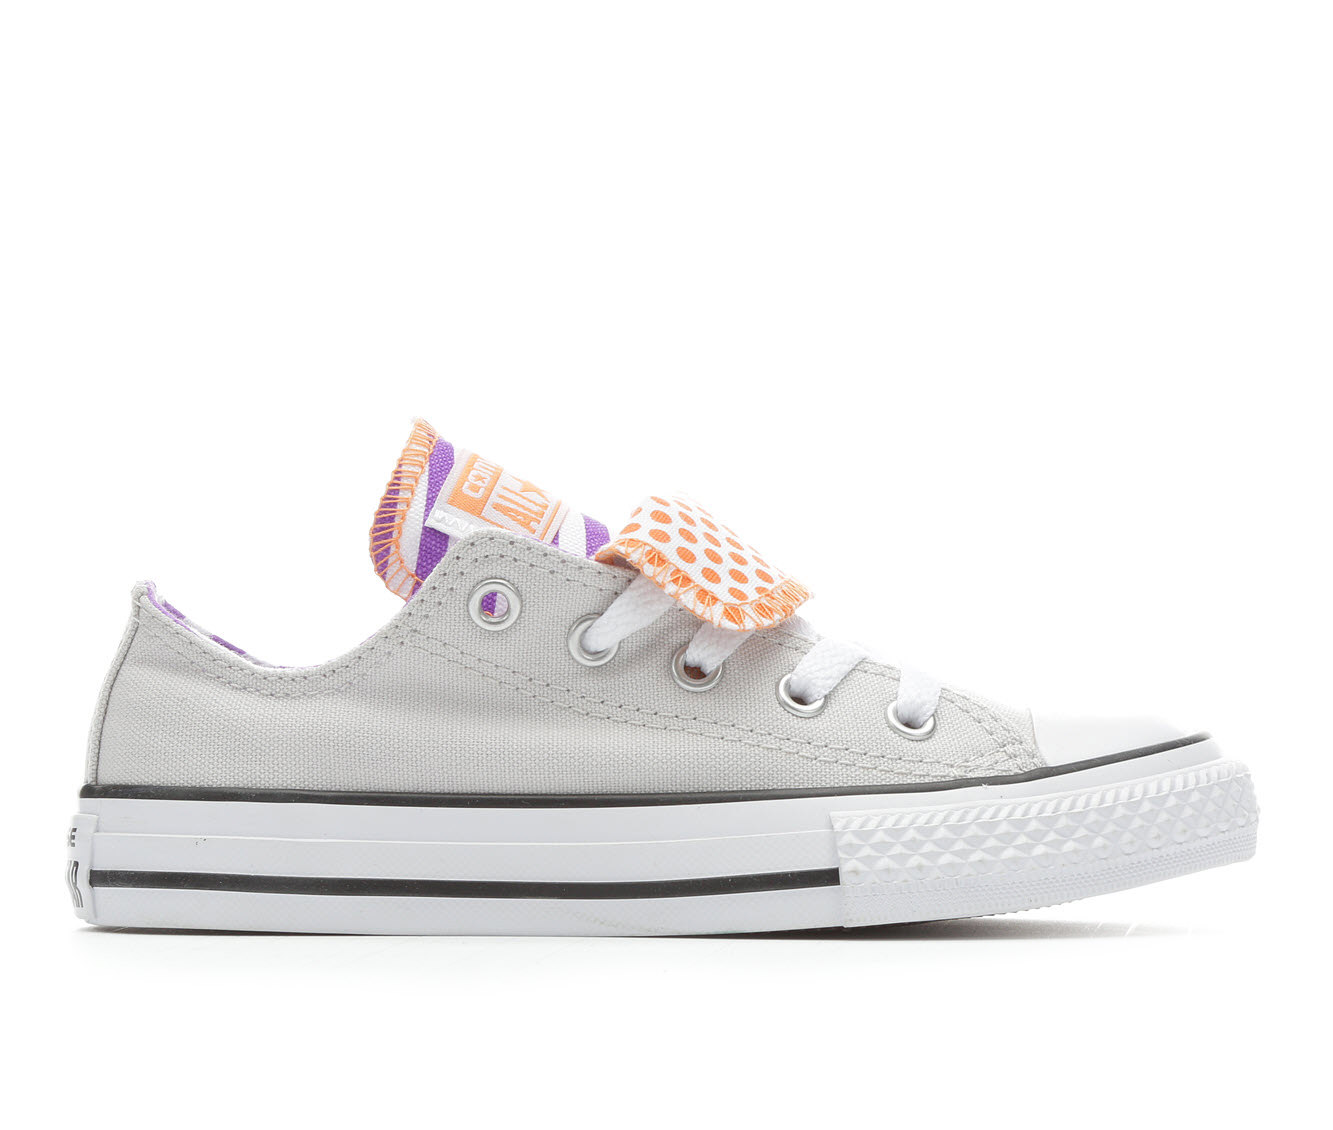 Girls' Converse Chuck Taylor DT Dots and Stripes Sneakers (Grey)